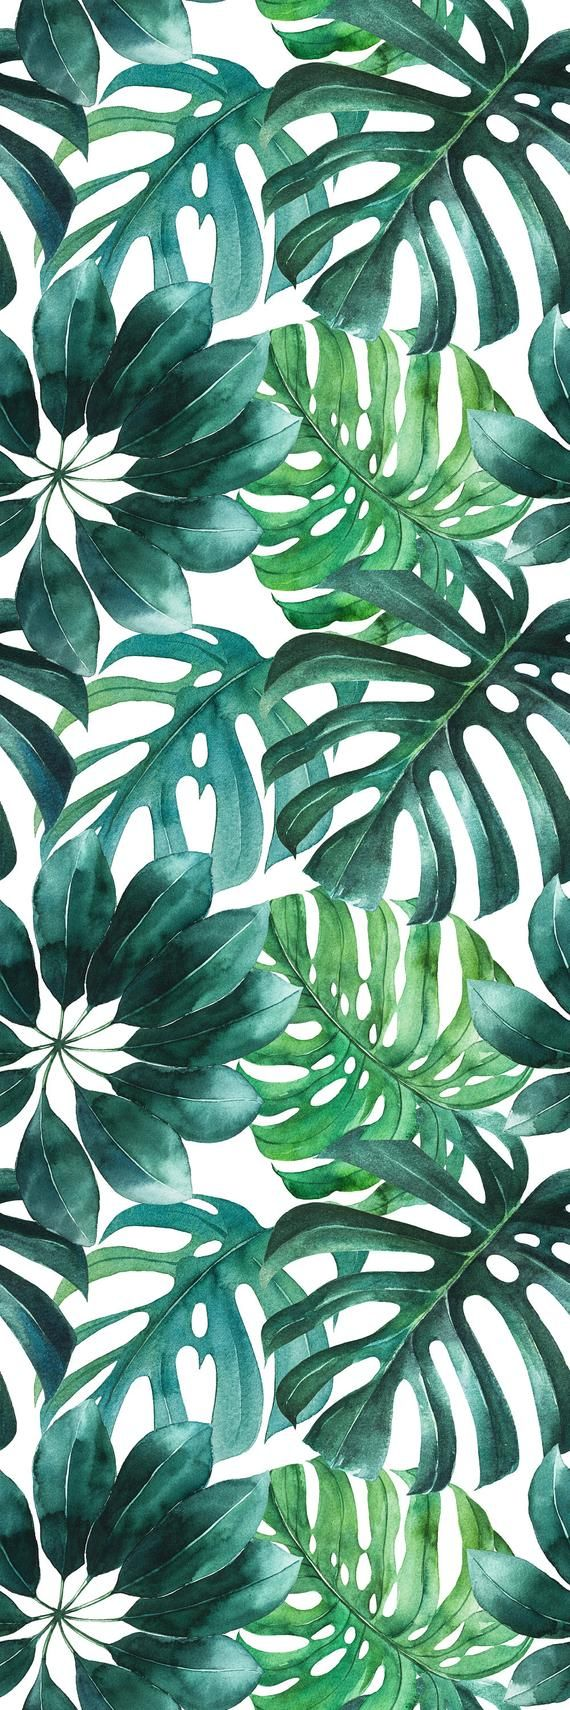 Removable Wallpaper With Banana Leaf Print Banana Leaves Peel And Stick Wallpaper Tropical Leaf Removable Wallpaper For Nursery Wallpaper Living Room Discount Bedroom Furniture Wallpaper Bedroom